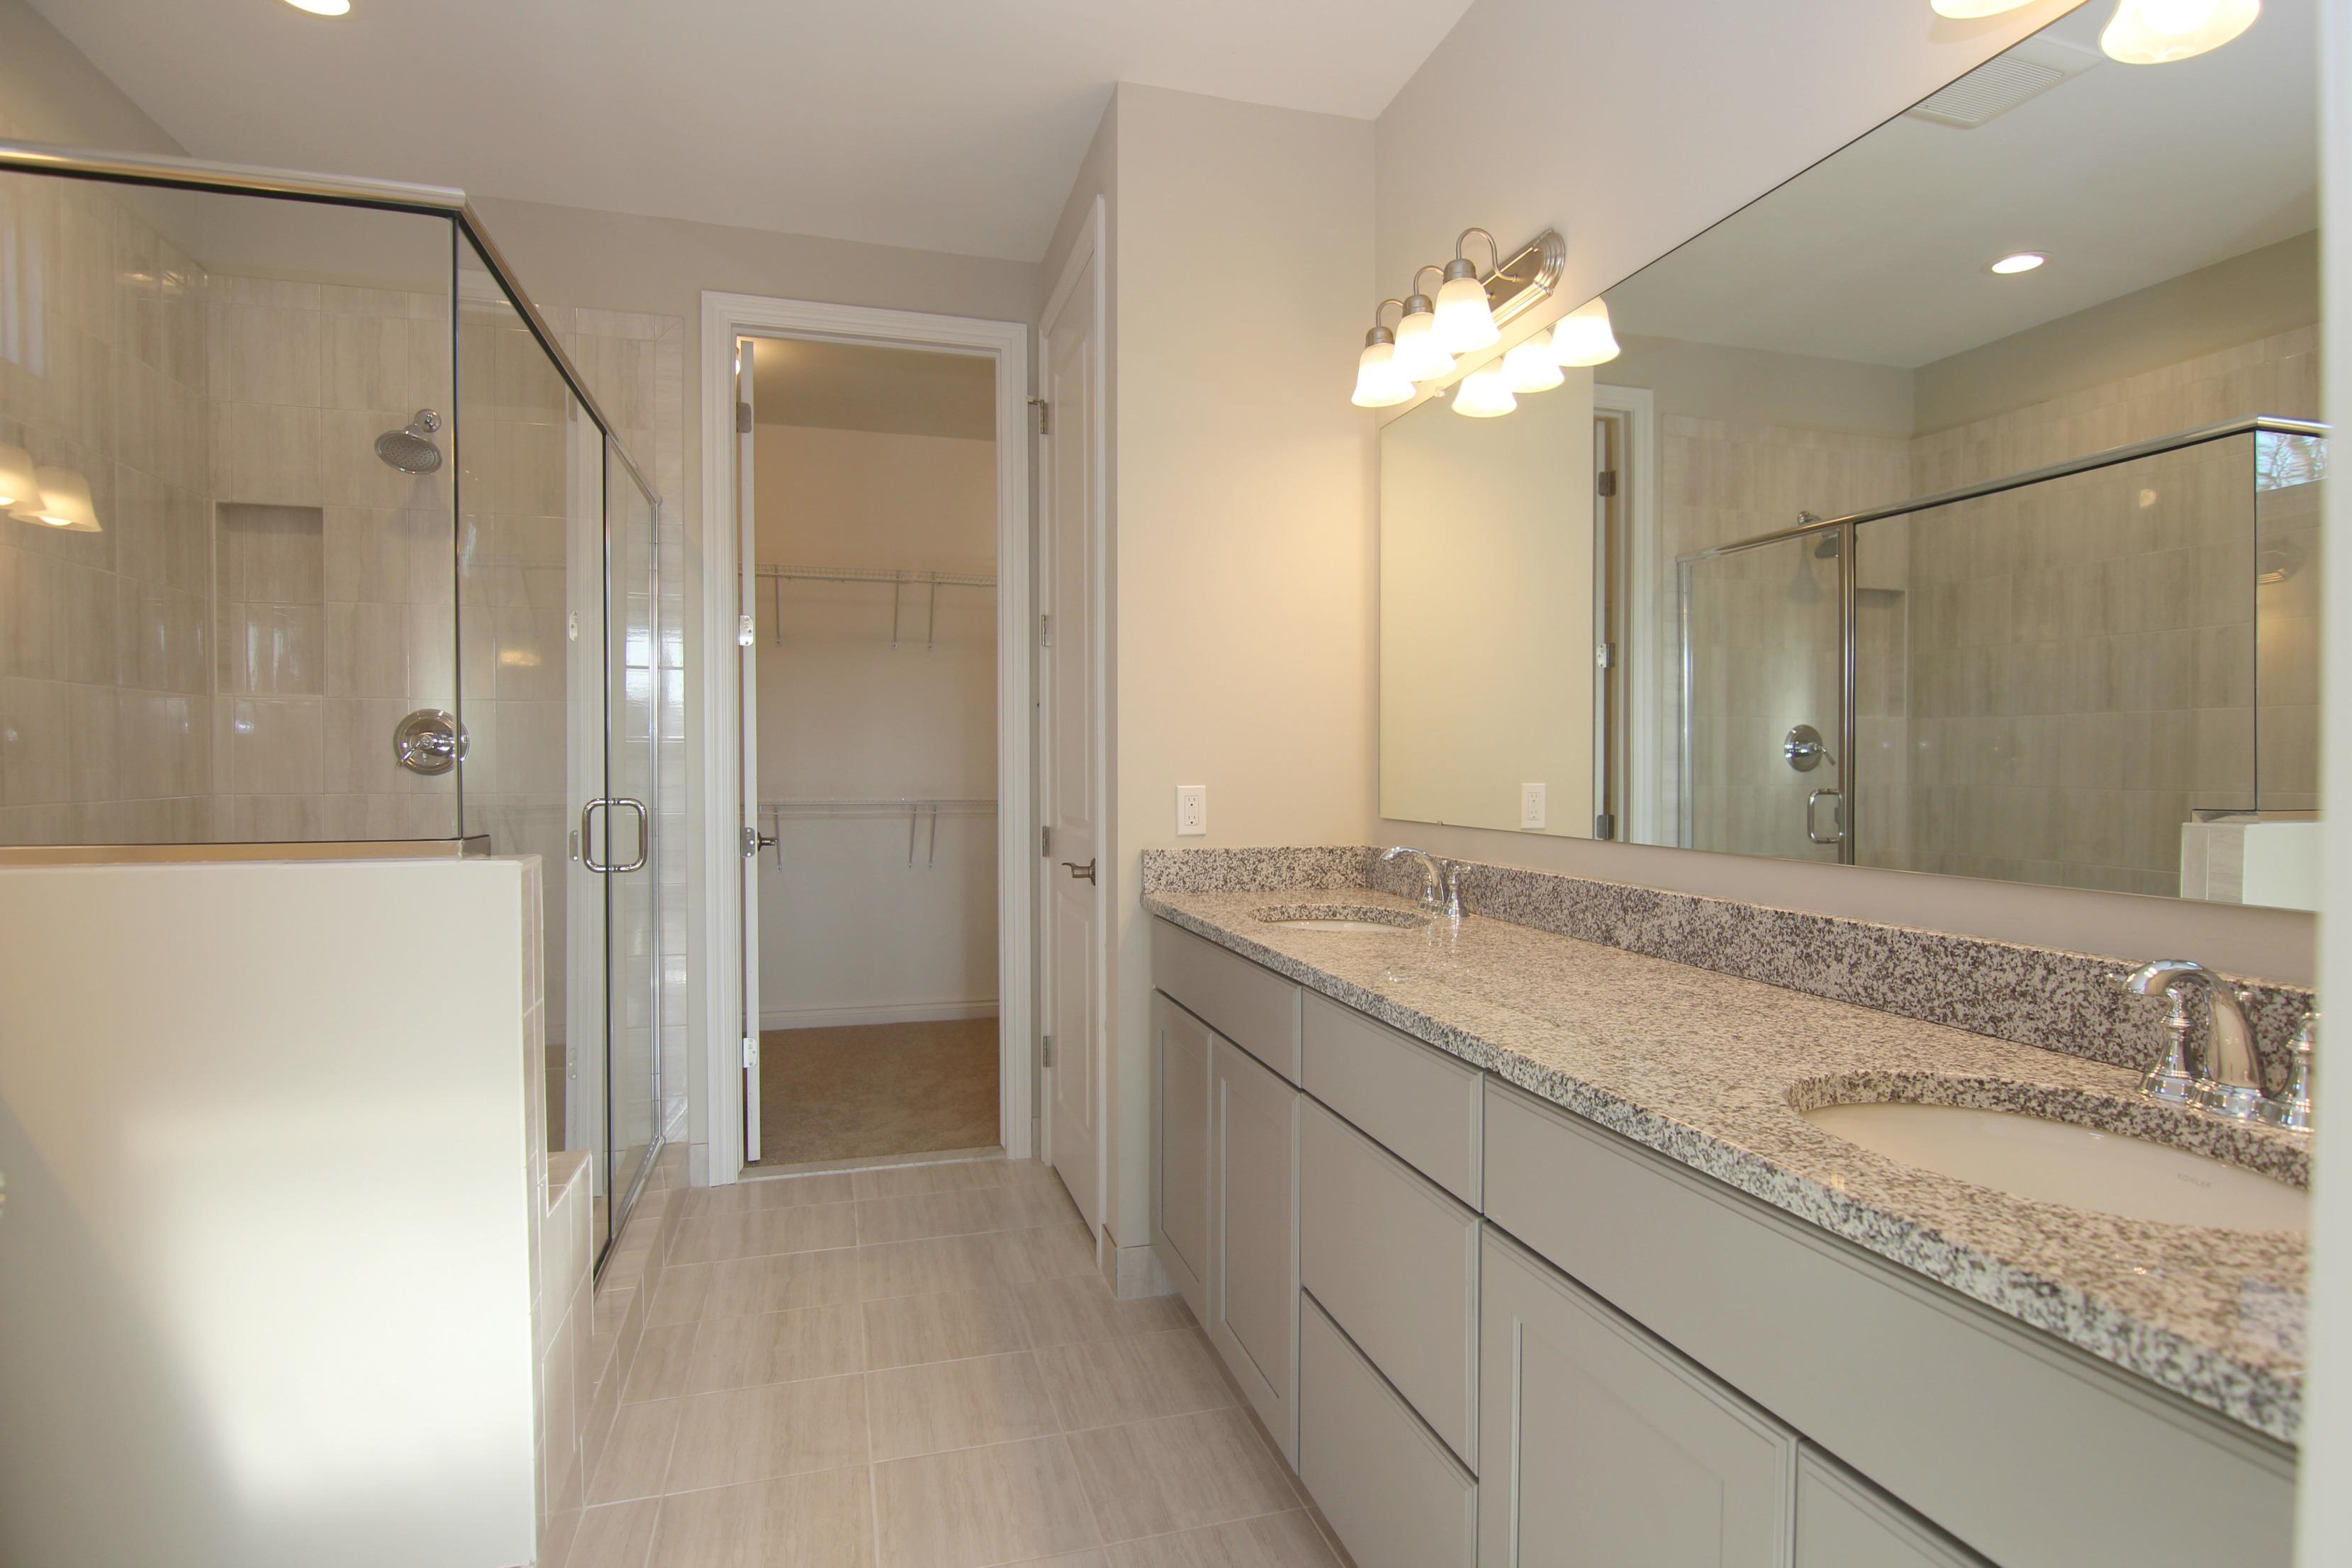 Bathroom featured in The Traverse  By AP Builders in Detroit, MI